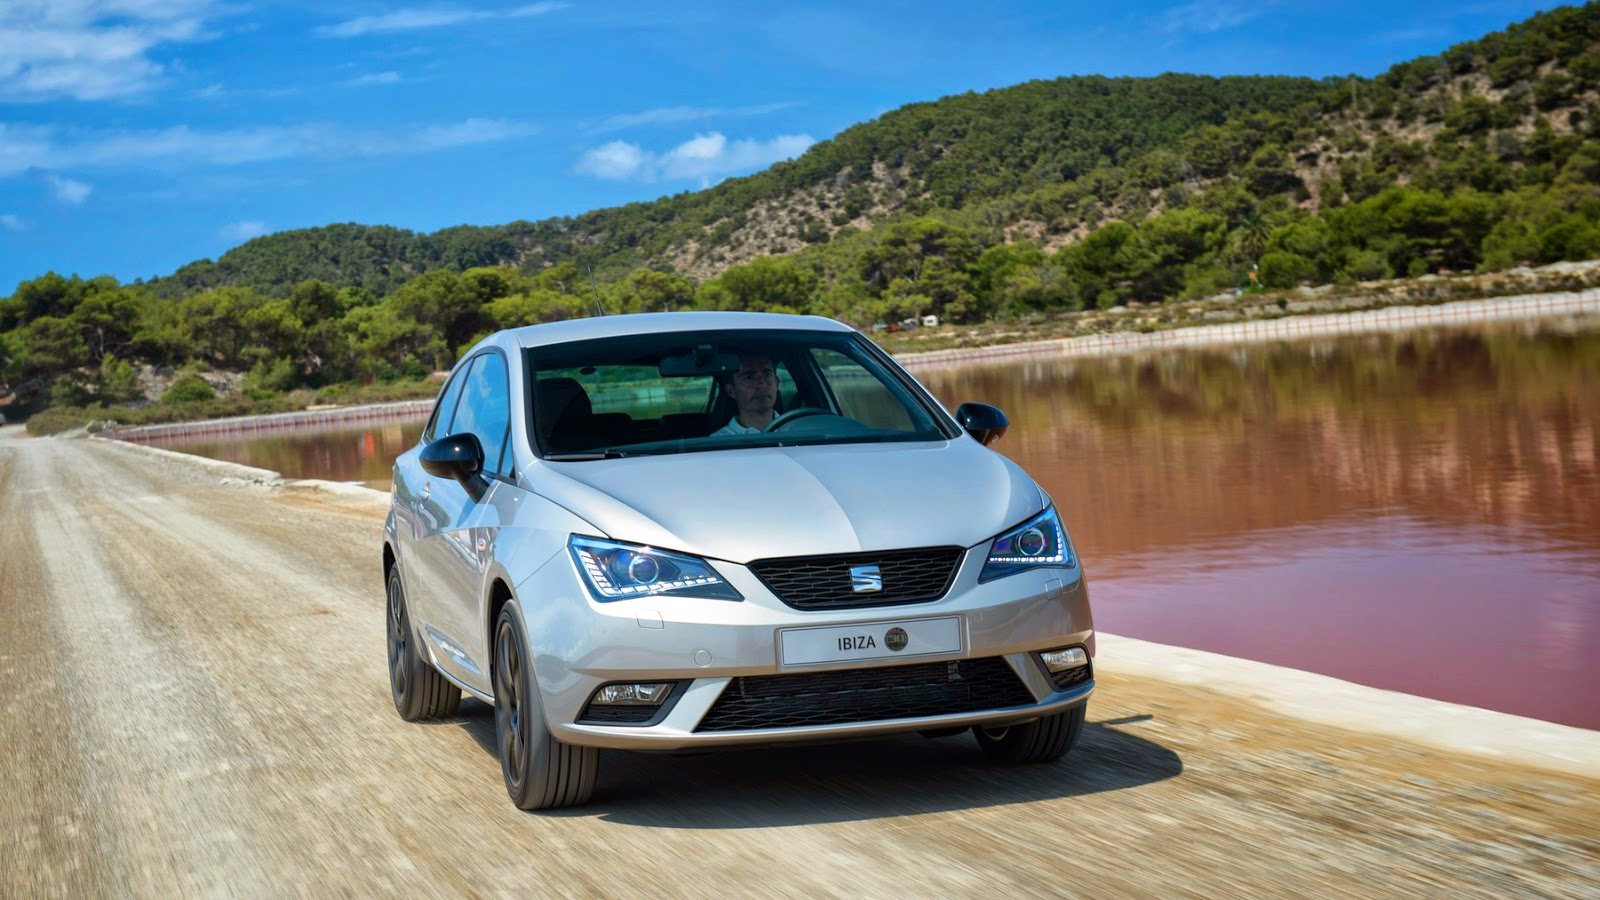 seat ibiza sc 30th anniversary edition 2014 aro 17 1 6. Black Bedroom Furniture Sets. Home Design Ideas